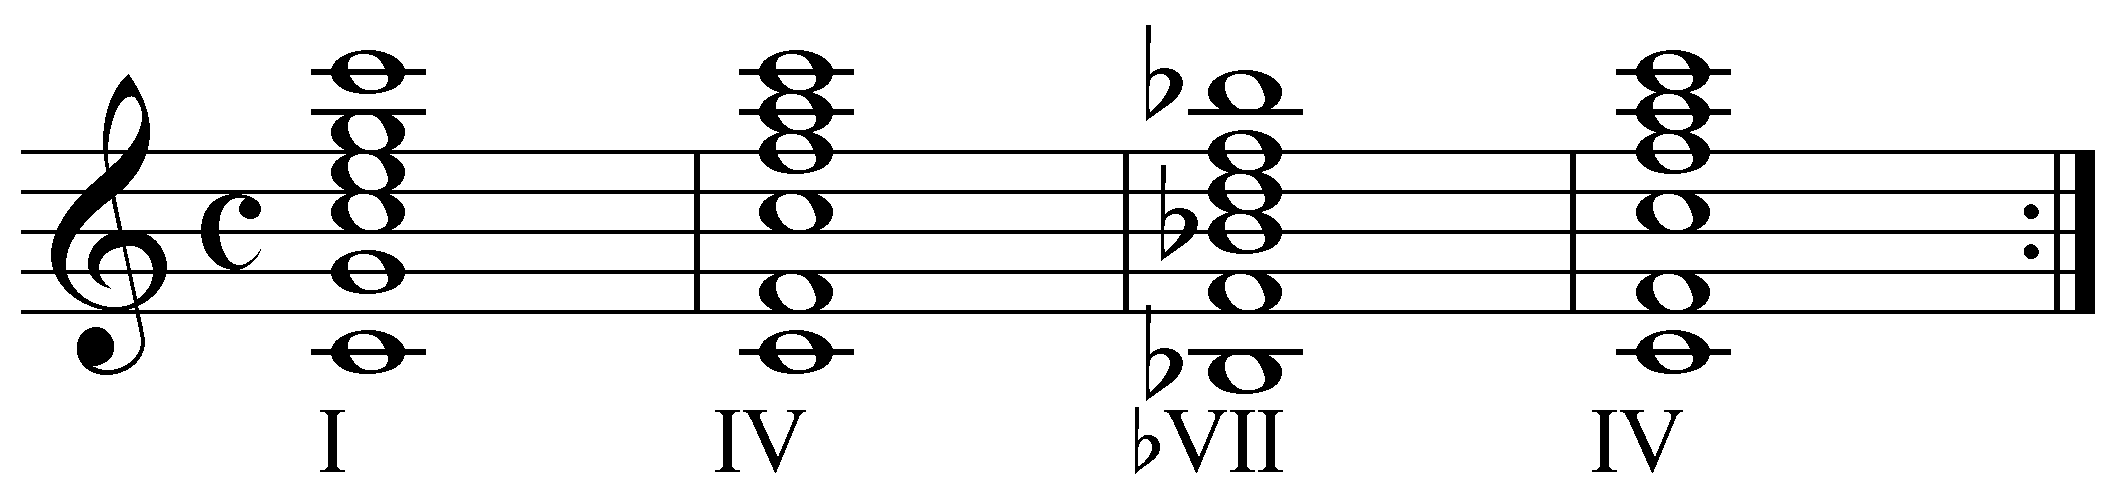 Learning Chord Progressions